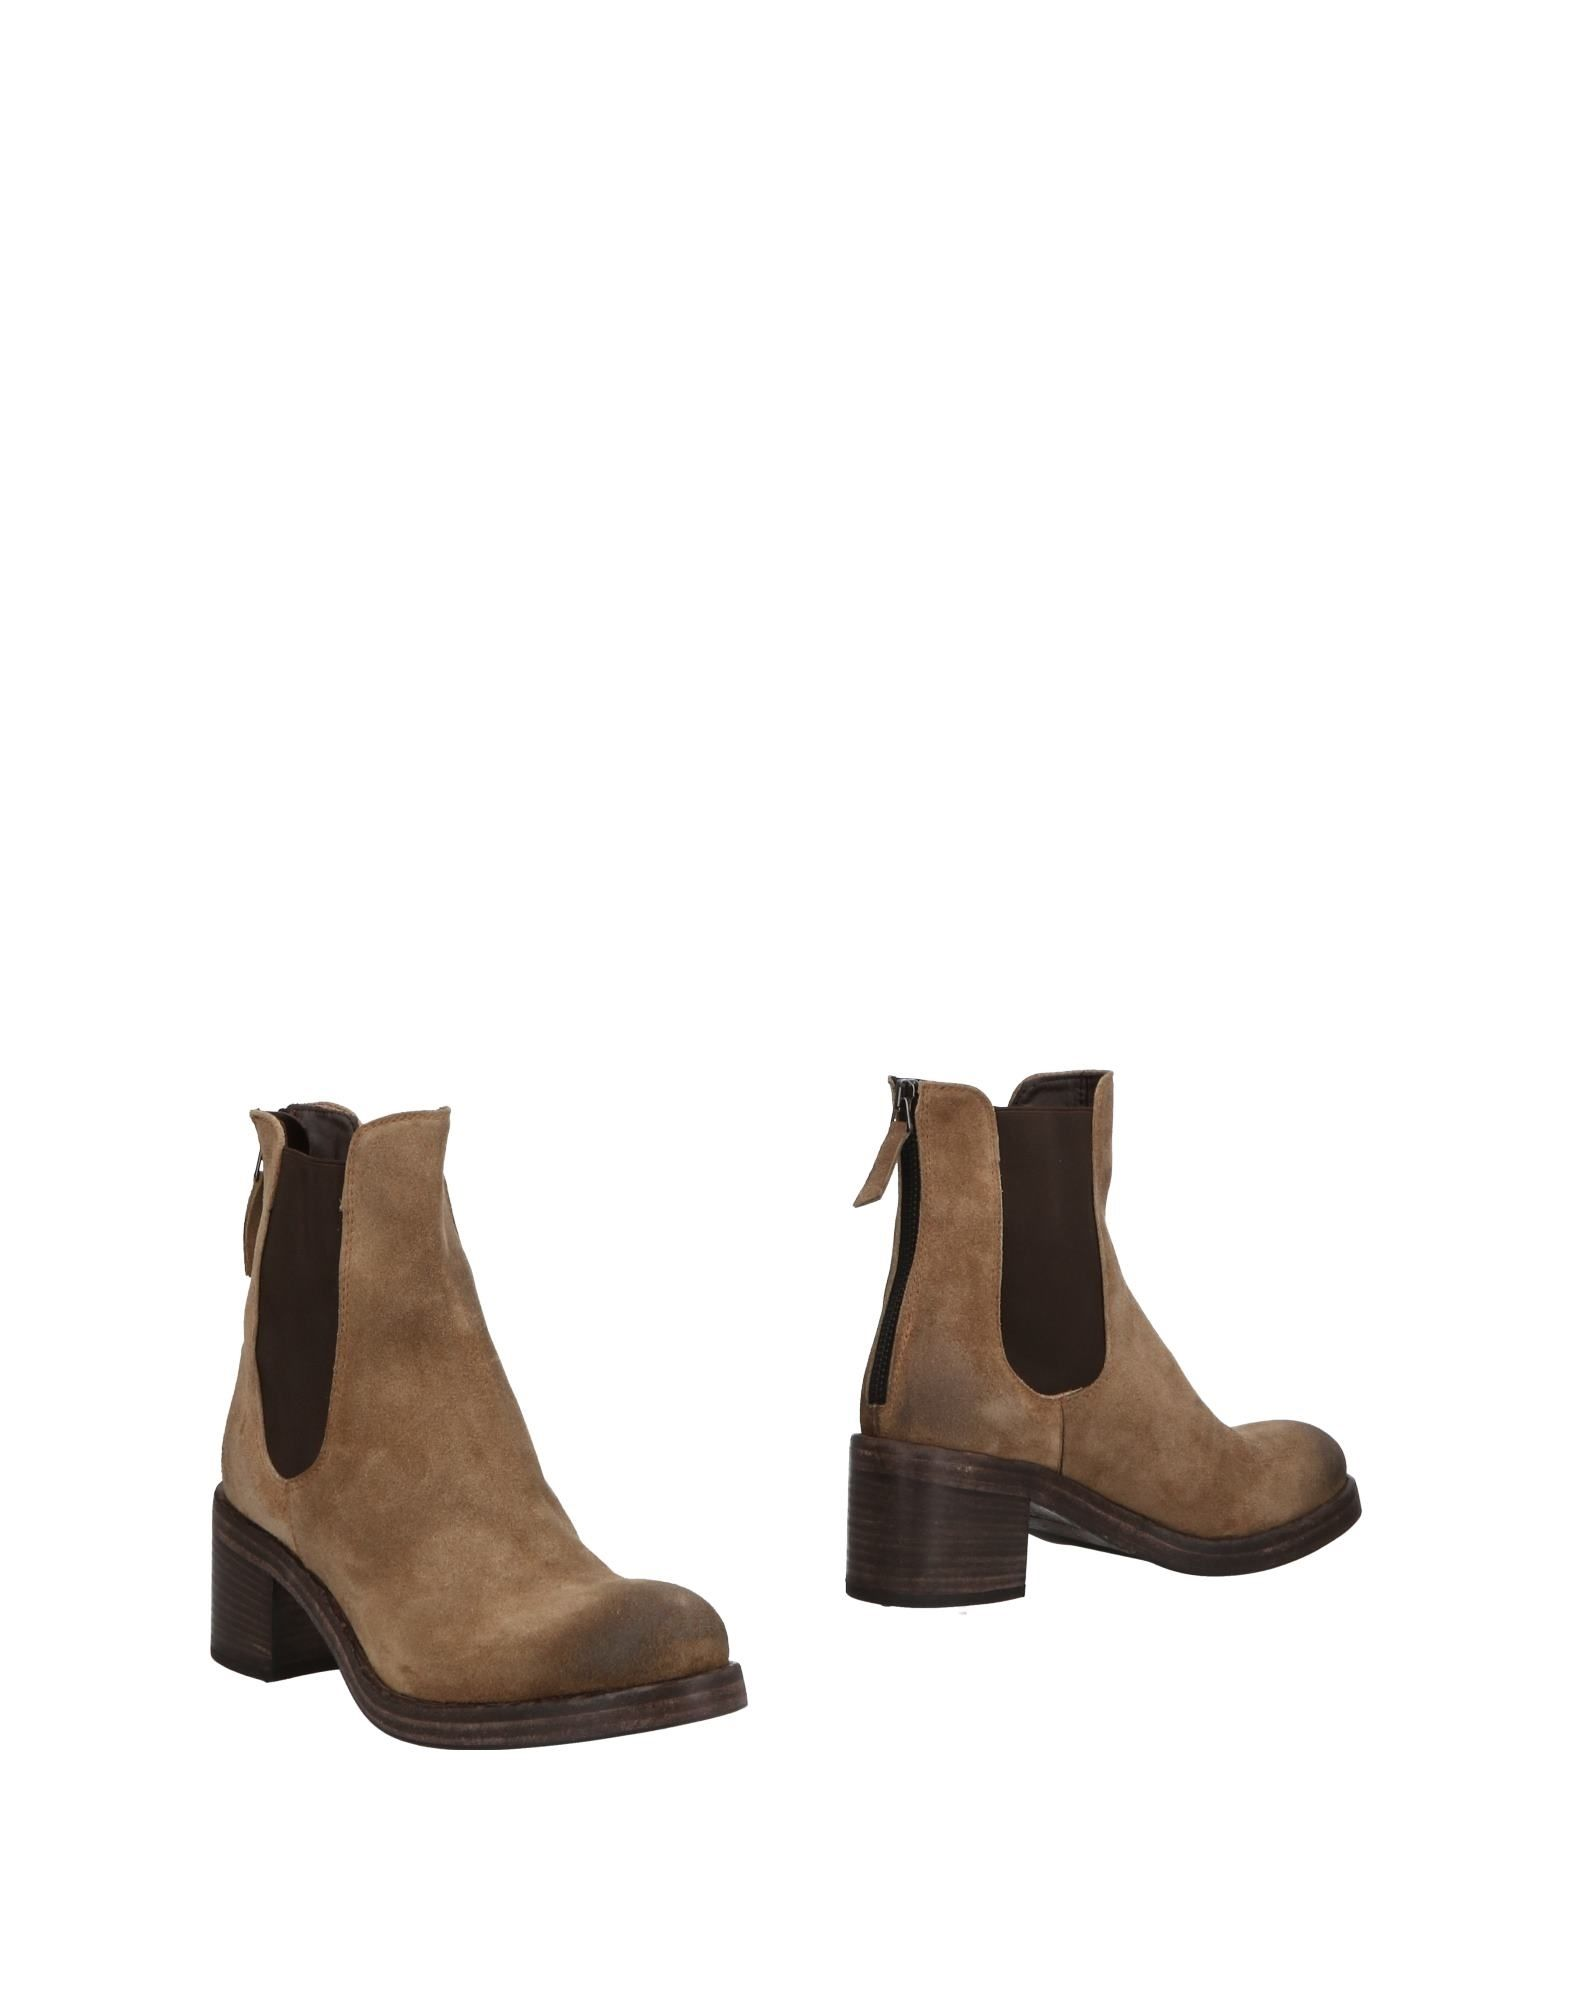 ERNESTO DOLANI Ankle Boot in Beige